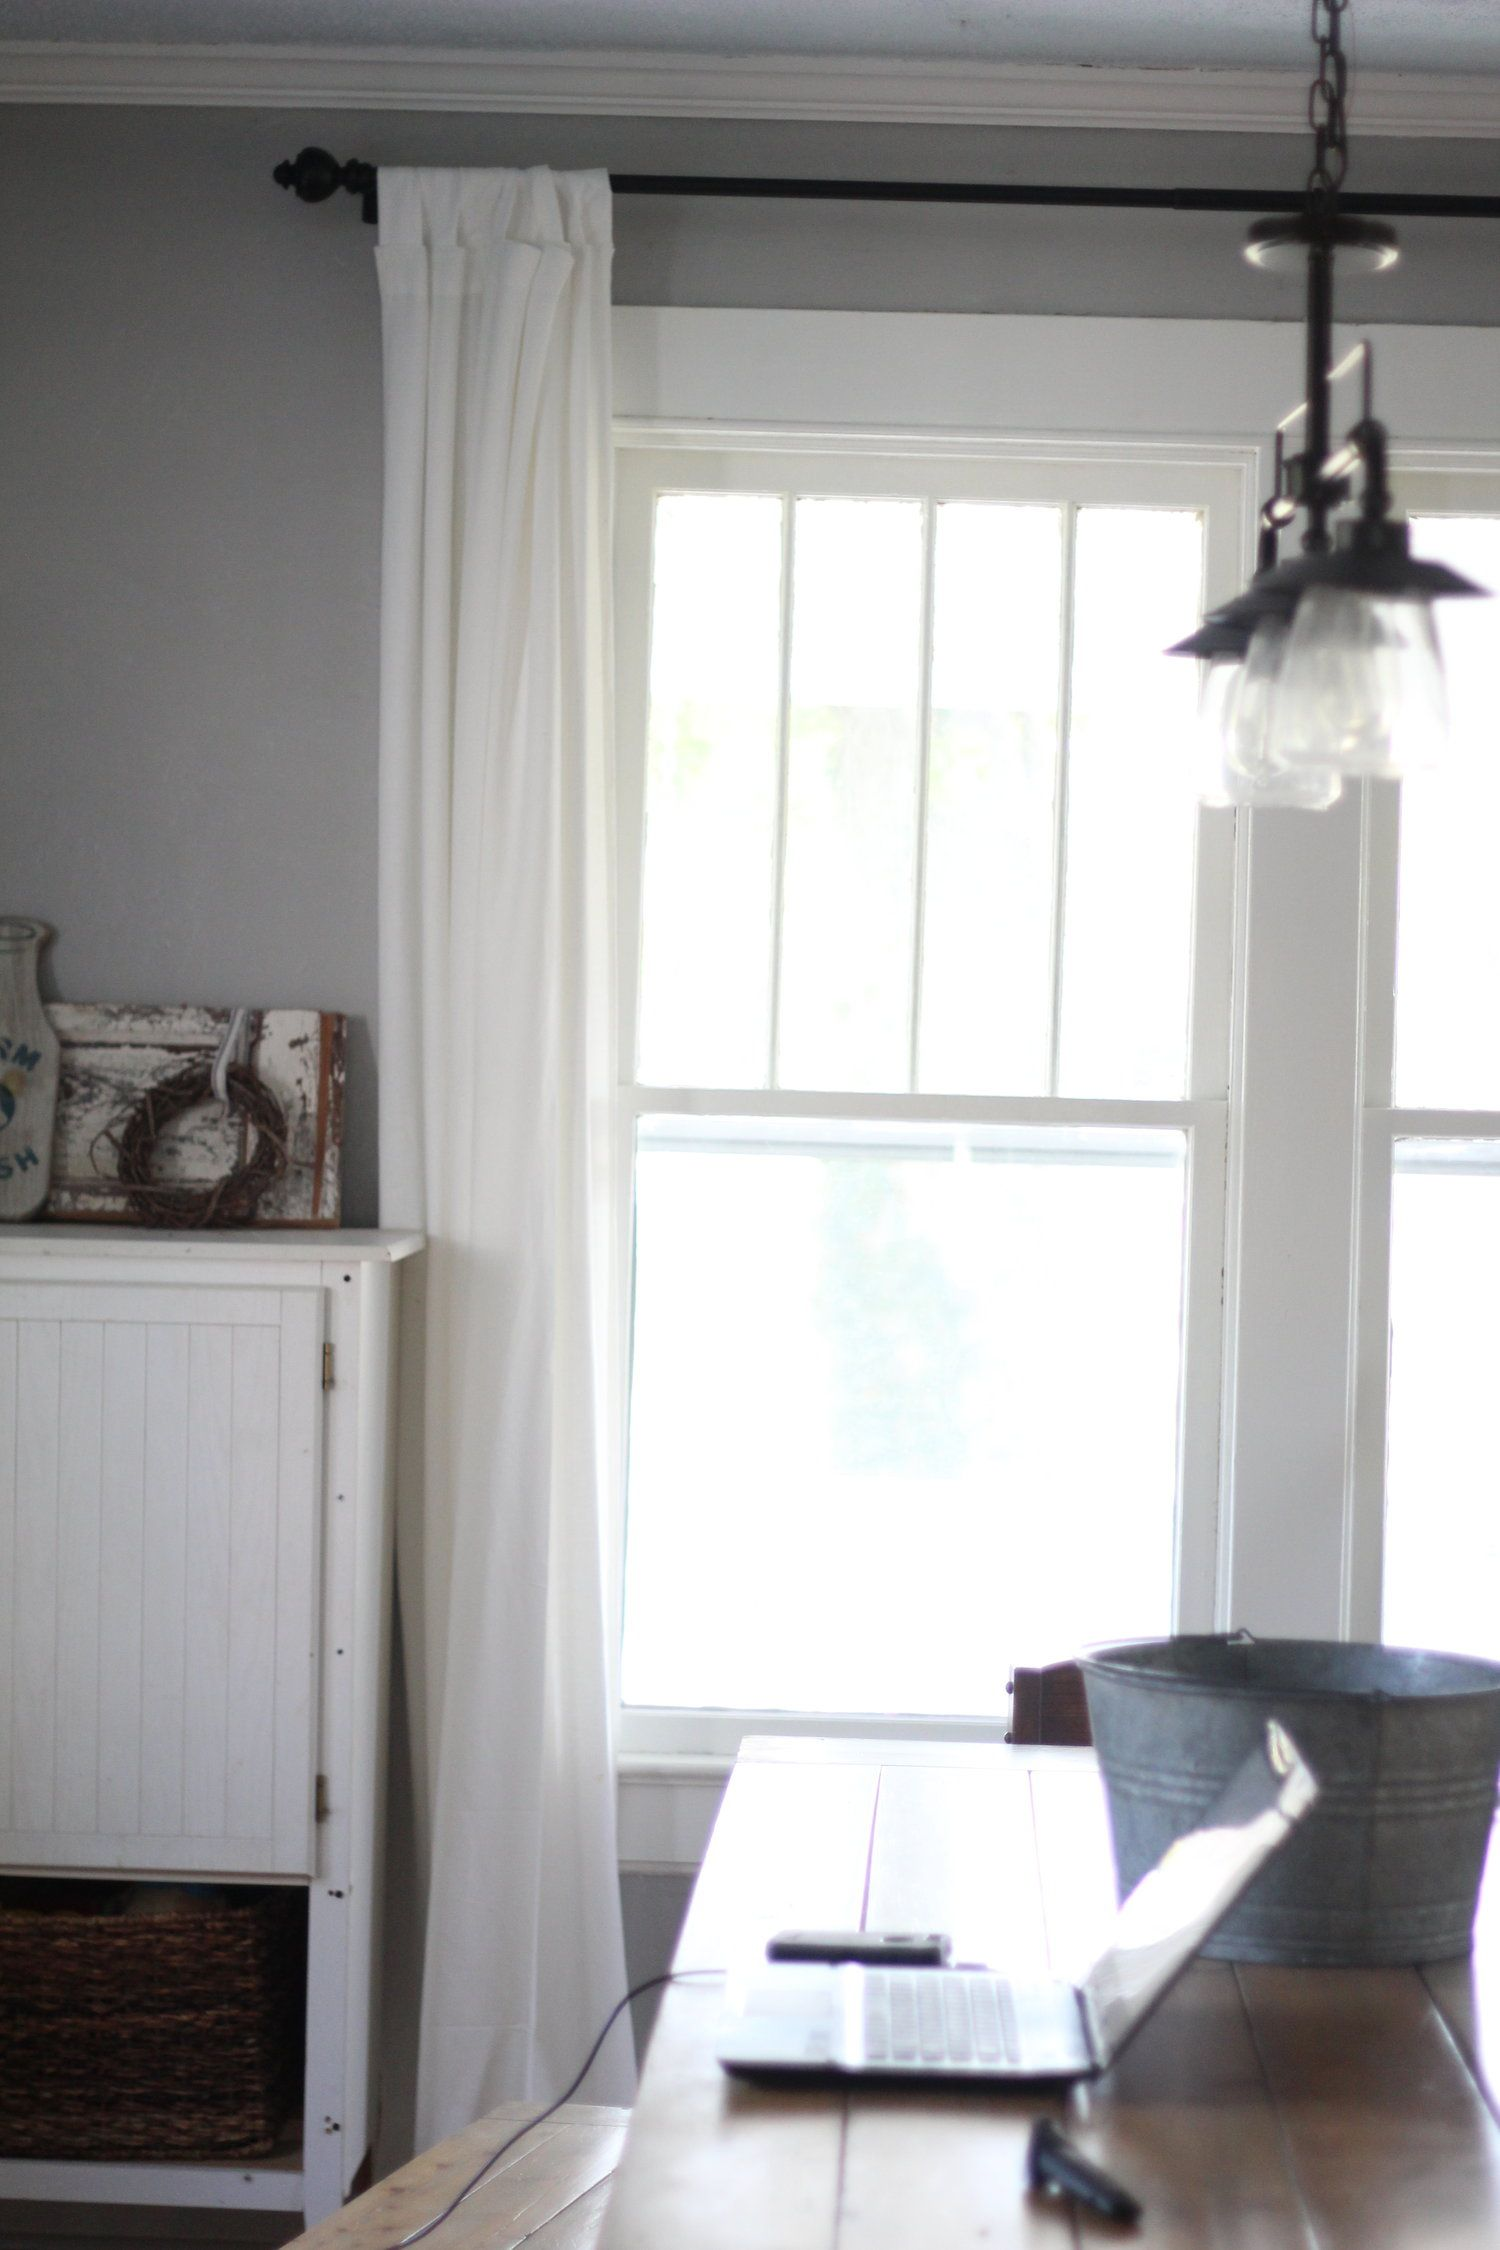 My Favorite Farmhouse Finds From IKEA Living room decor